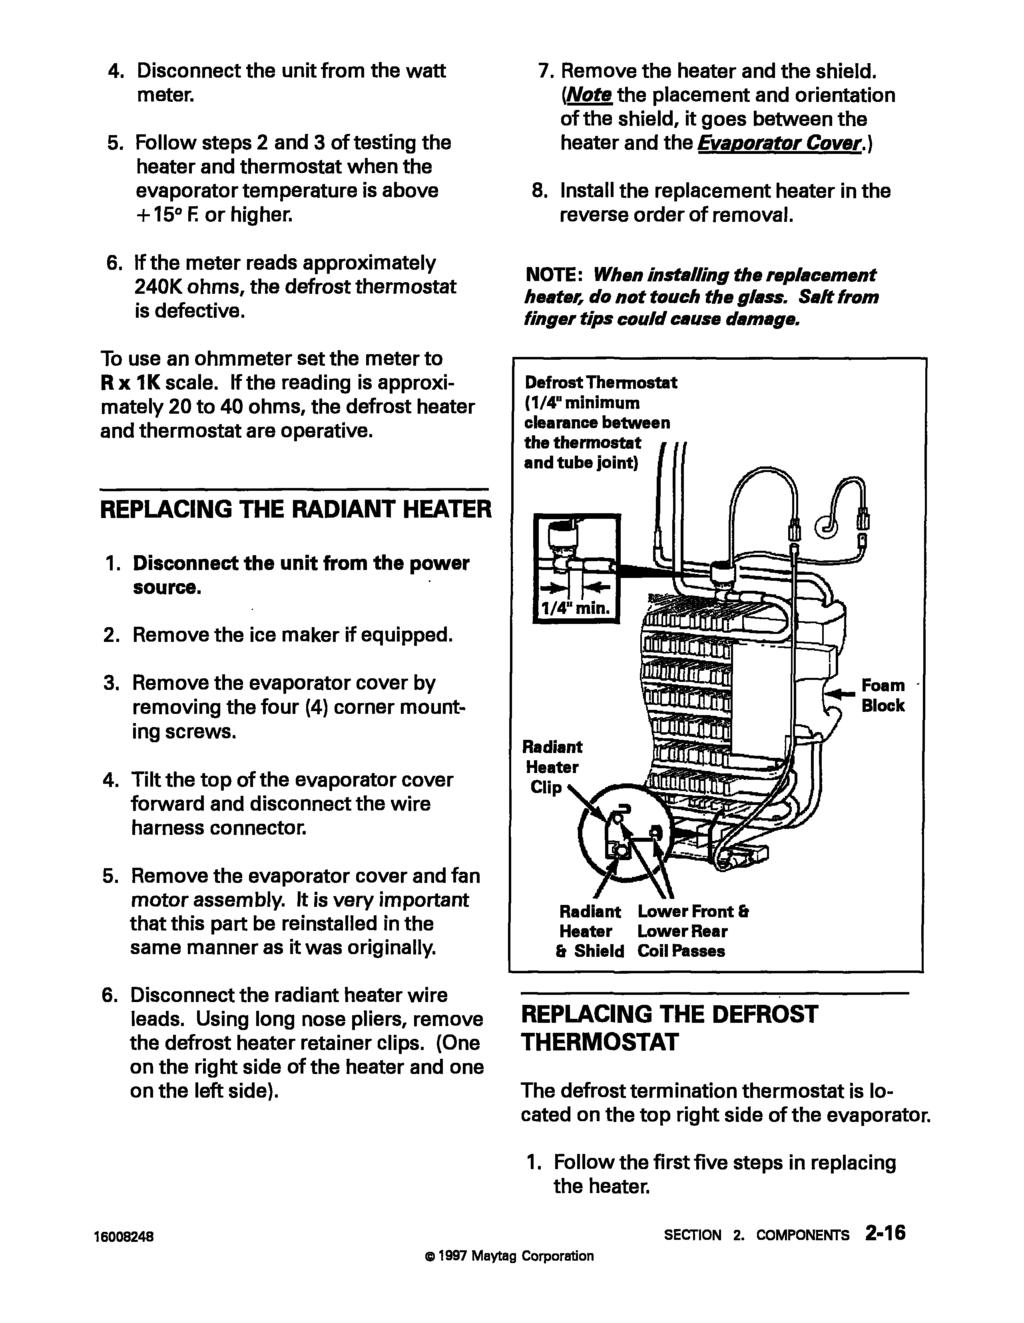 Maytag Customer Service Refrigeration Manual New Cabinet 4 Pin Wire Harness Disconnect The Unit From Watt Meter 5 Follow Steps 2 And